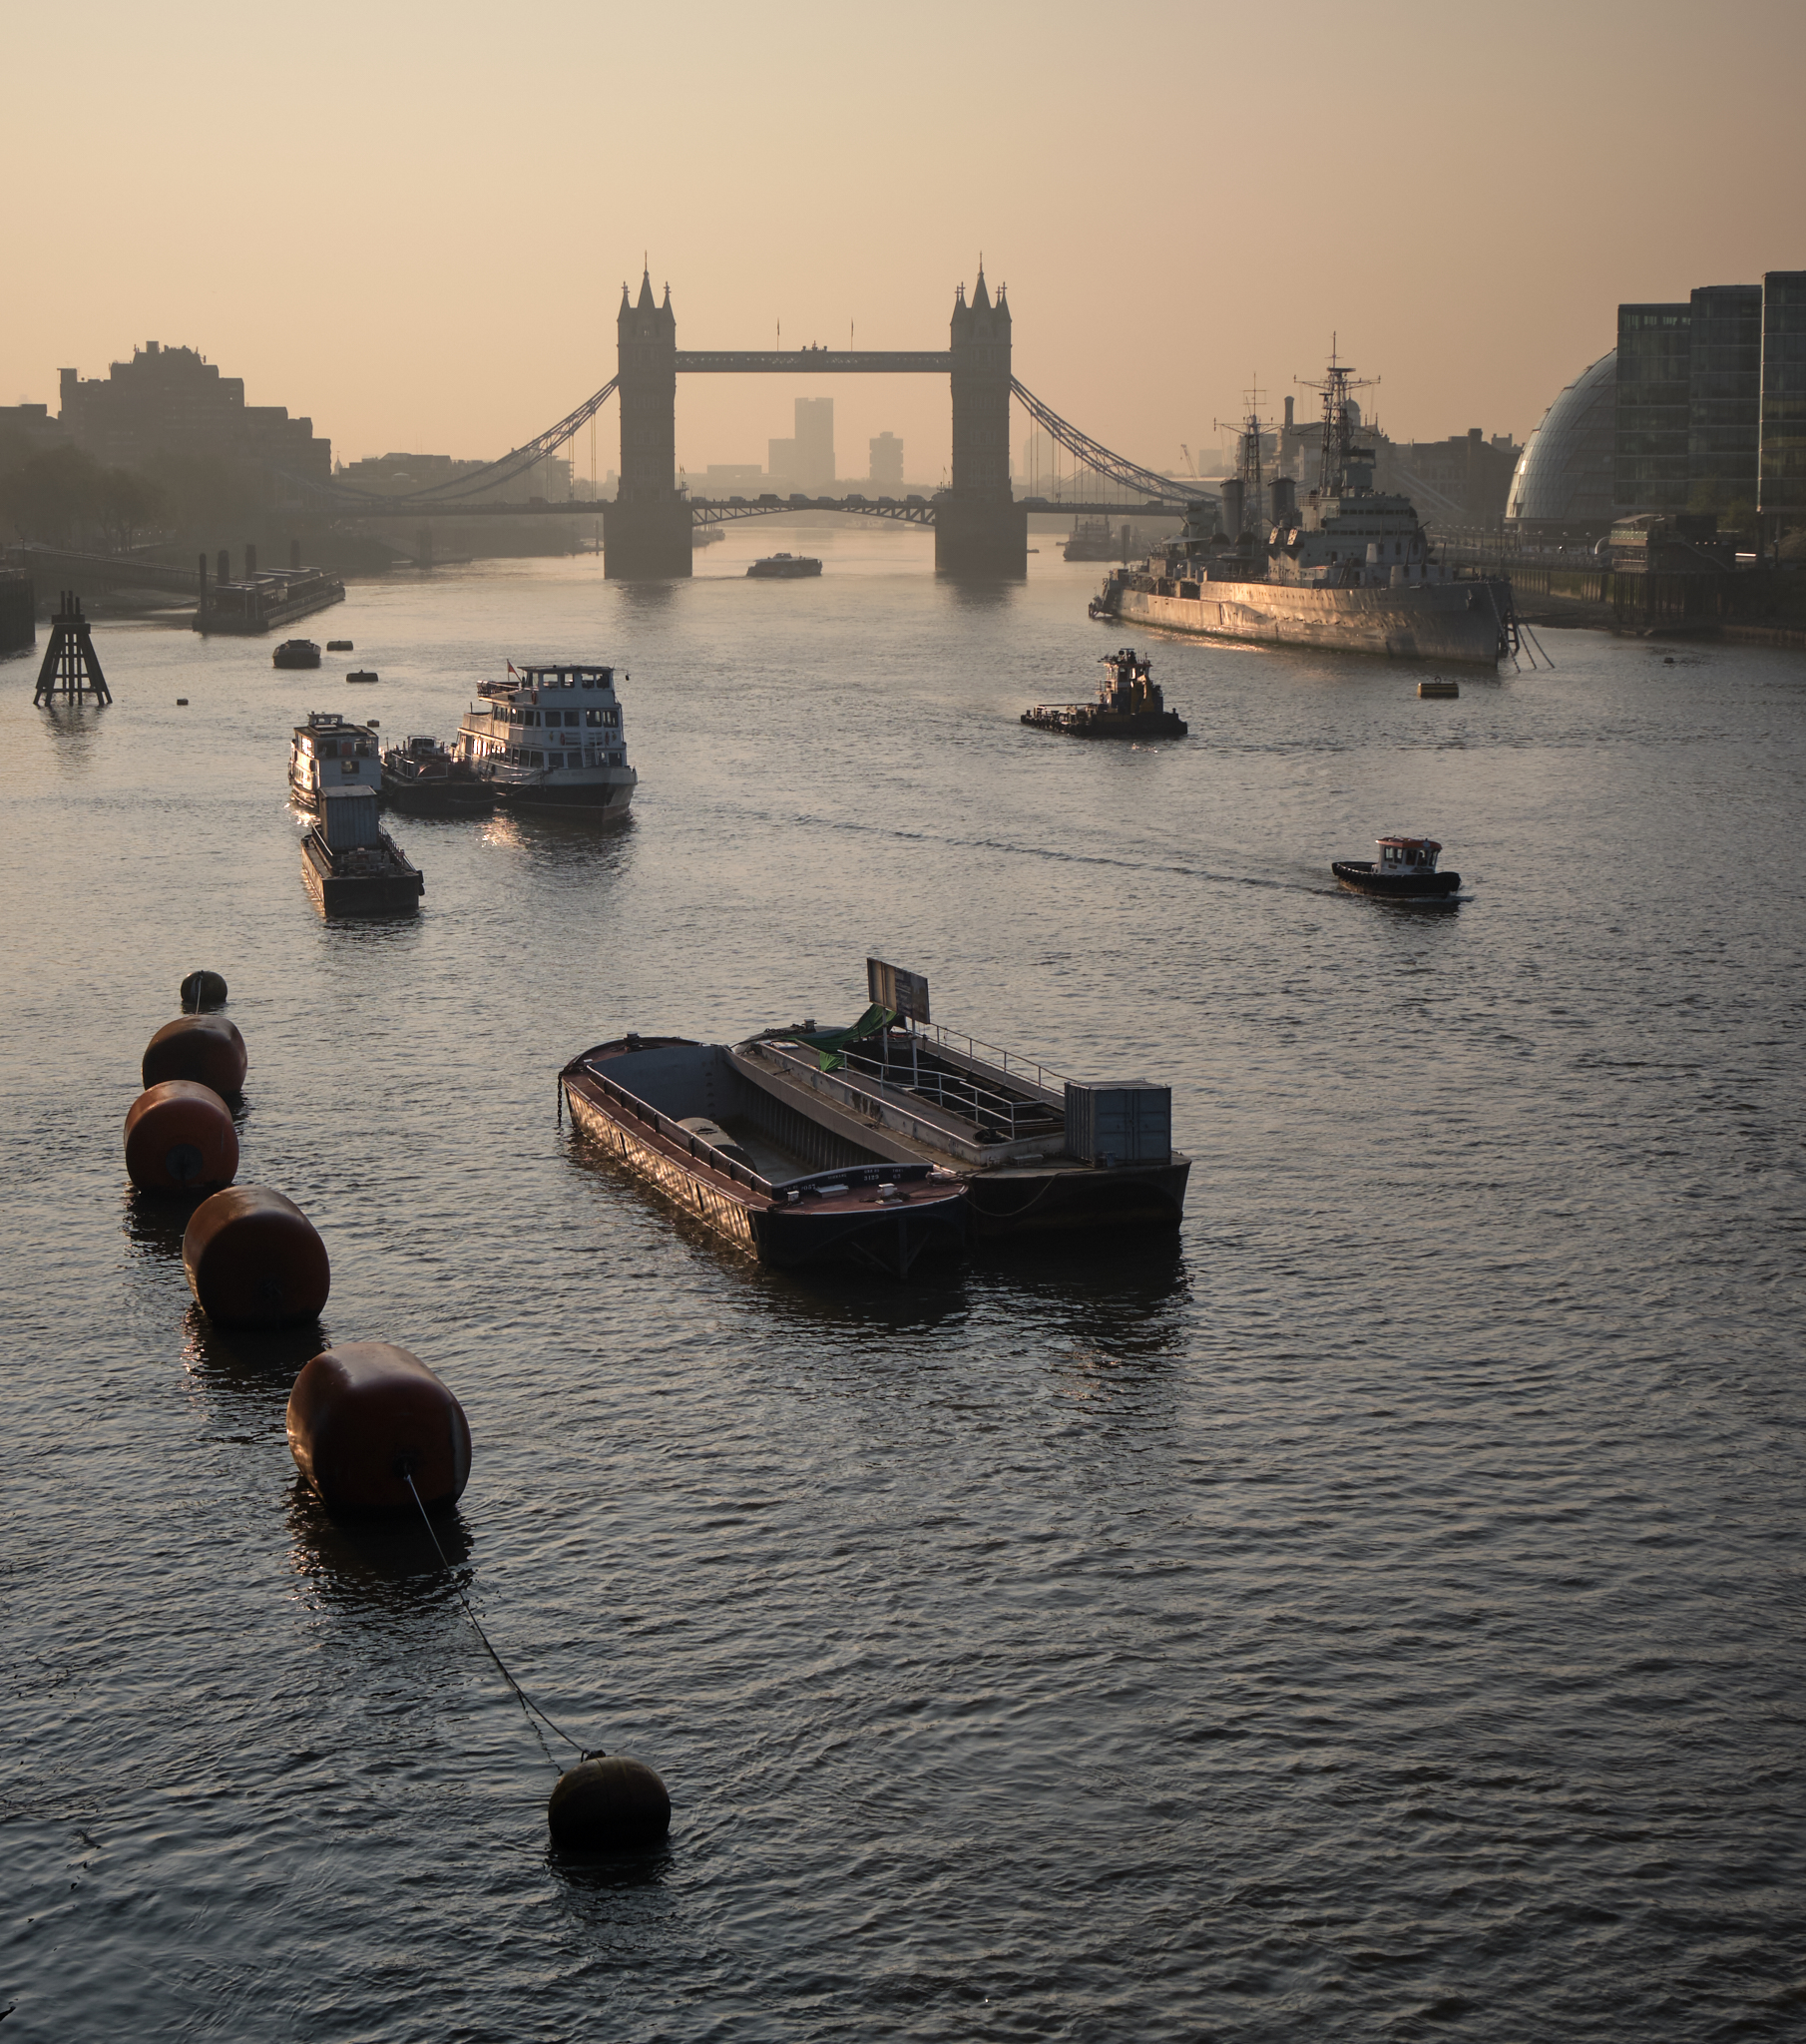 Tower Bridge and HMS Belfast reflected in the Thames Shot on Fuji X-T3 and 16-55mm f2.8